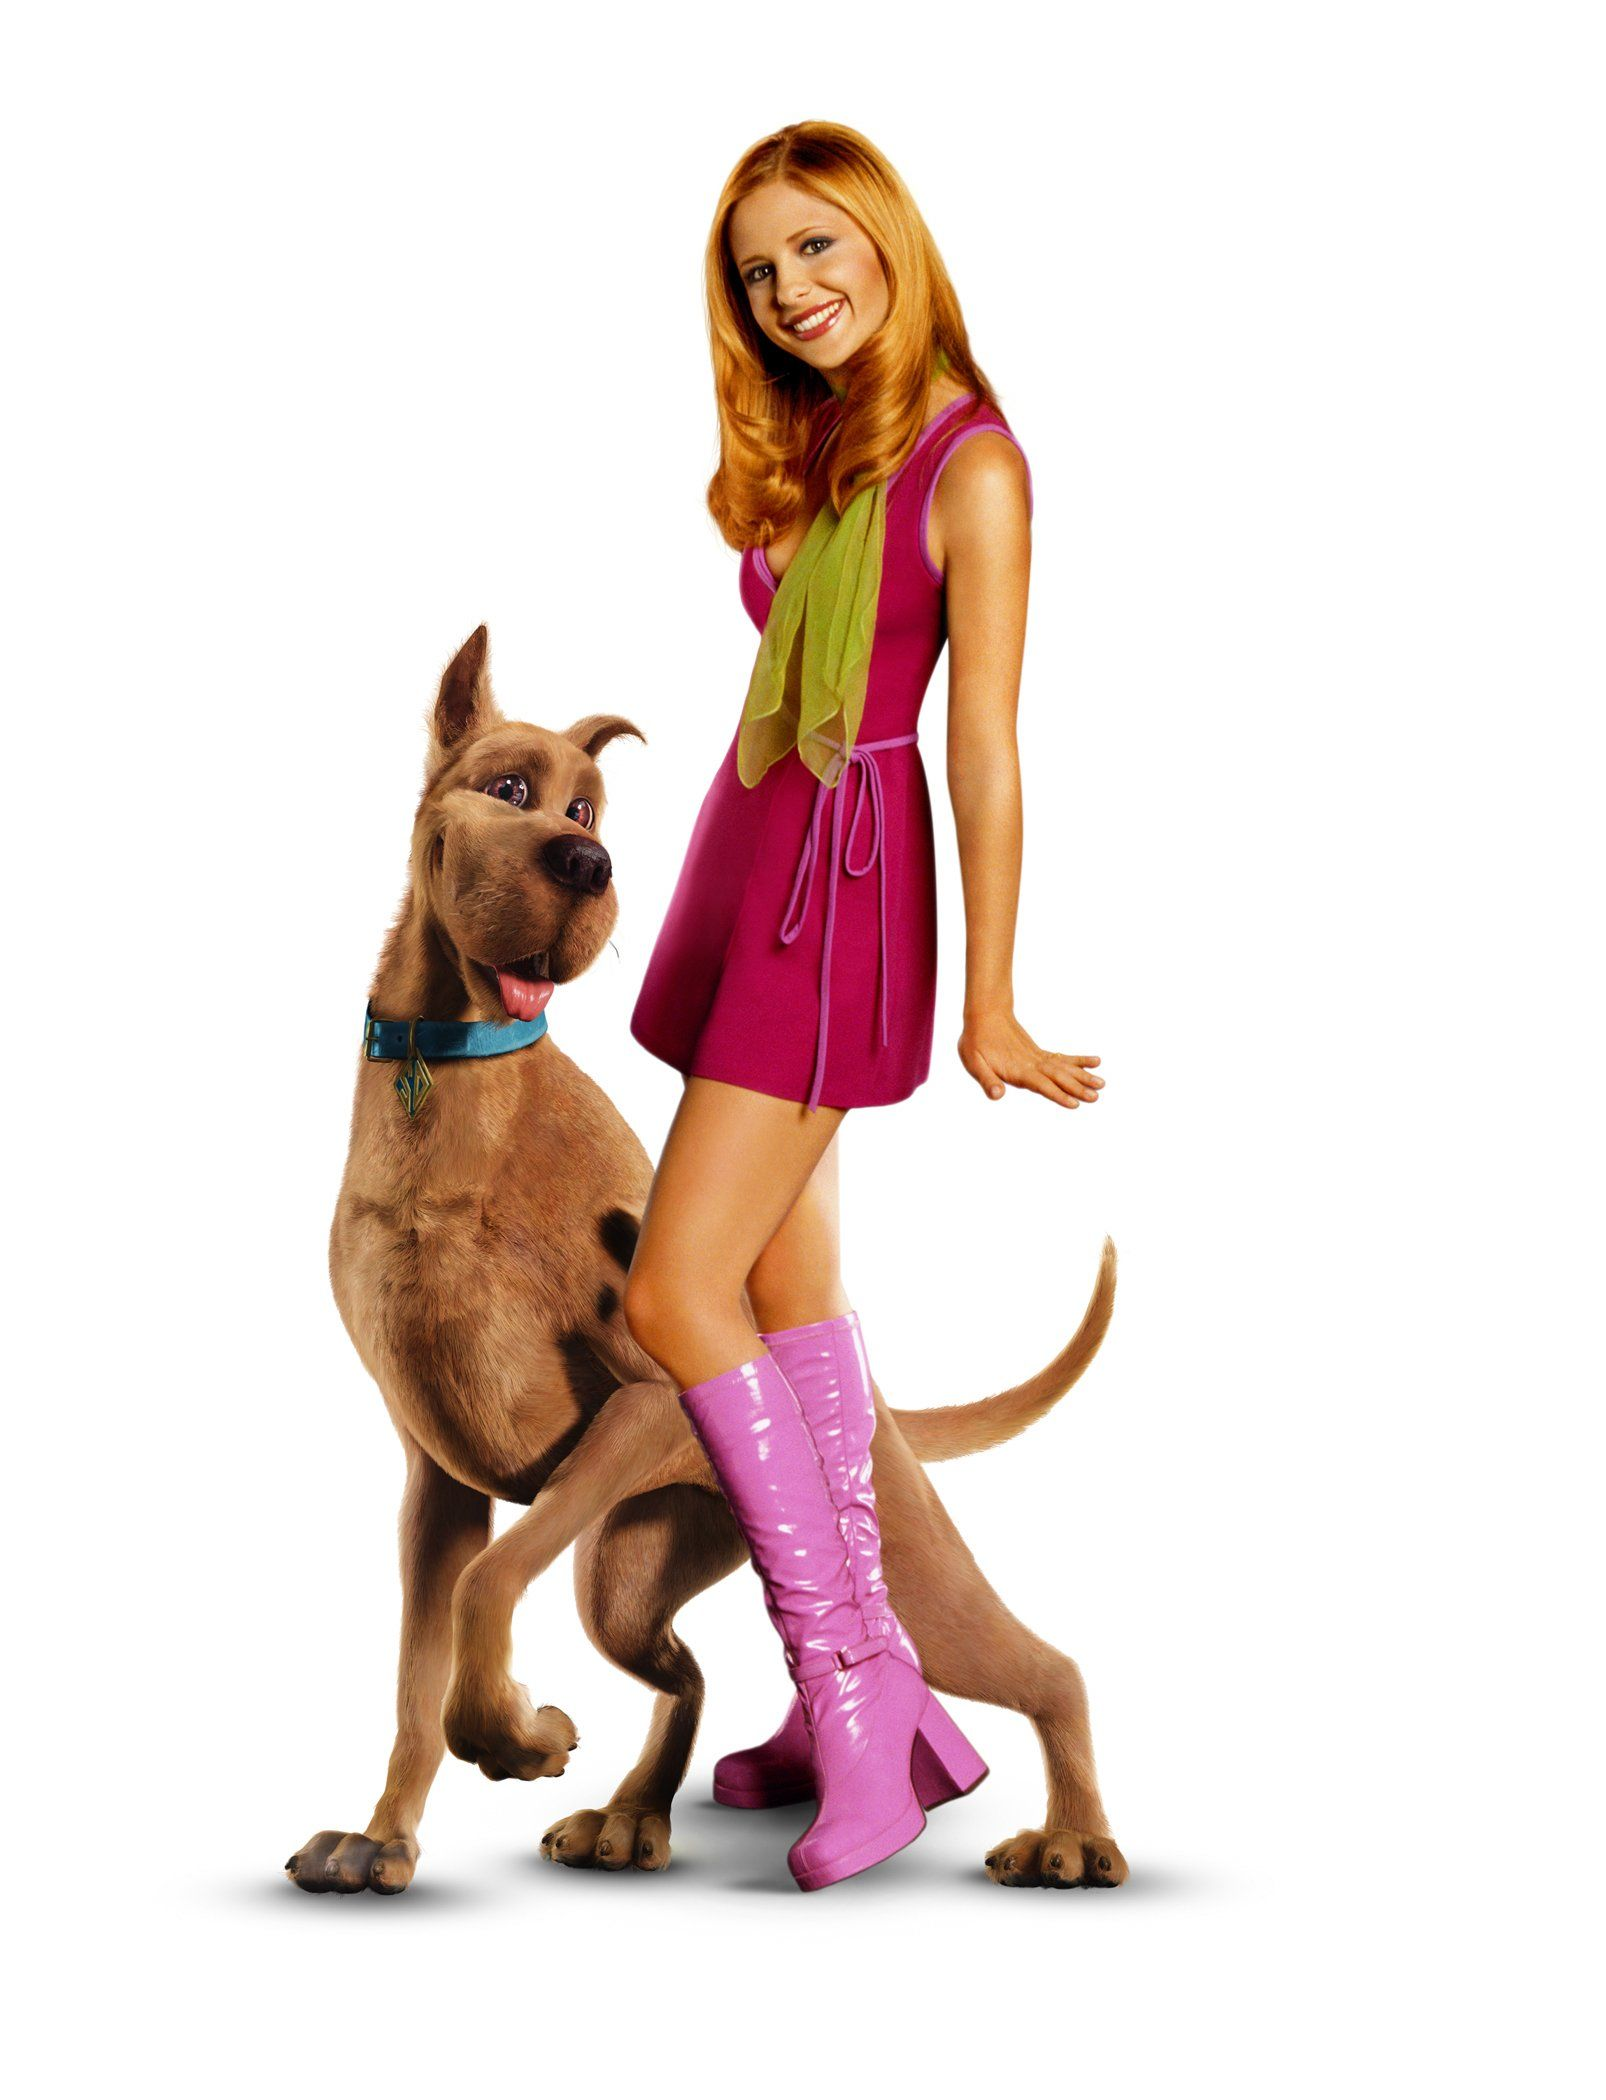 Daphne blake from scooby doo played by sarah michelle - Personnage scooby doo ...